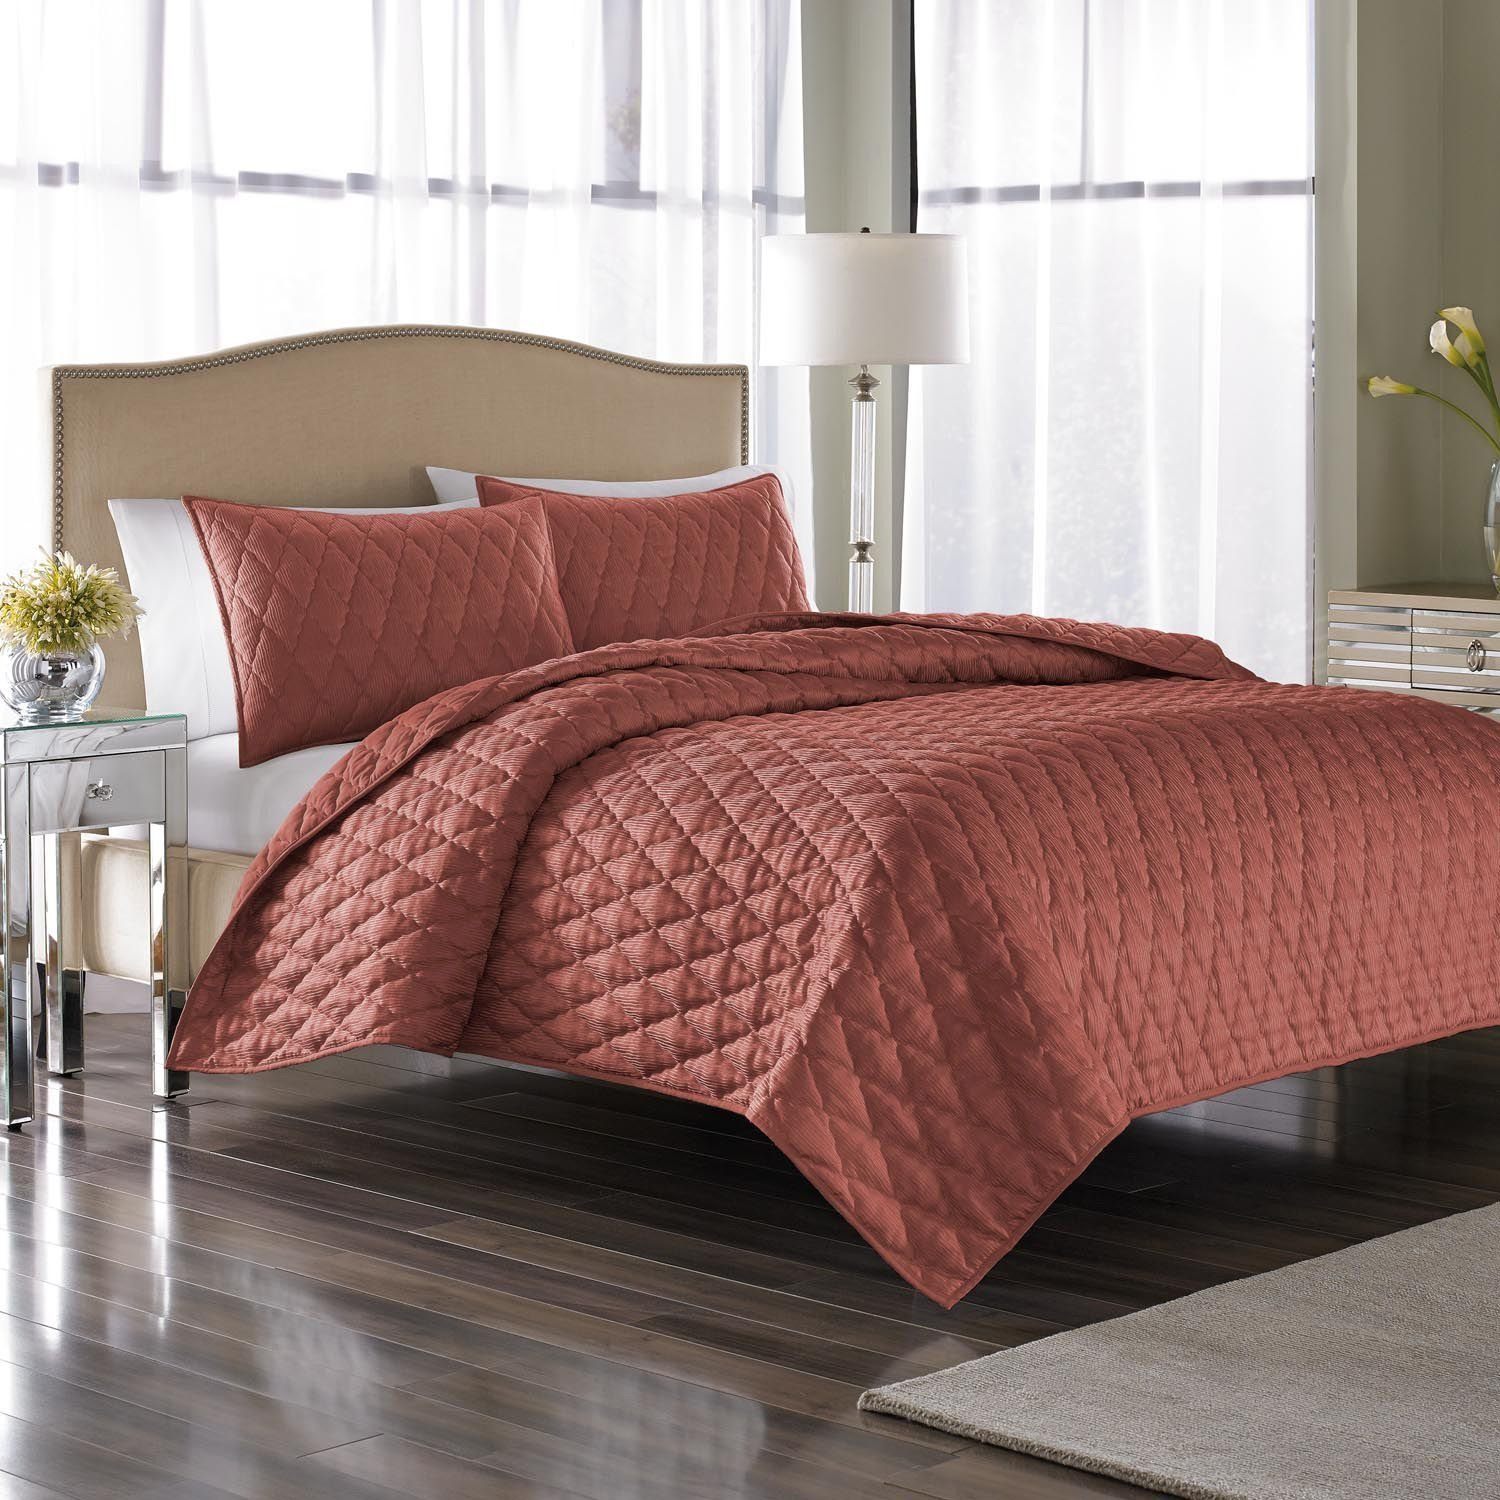 Nicole Miller 3-piece Coverlet/sham Set, Full/queen Size, Coral